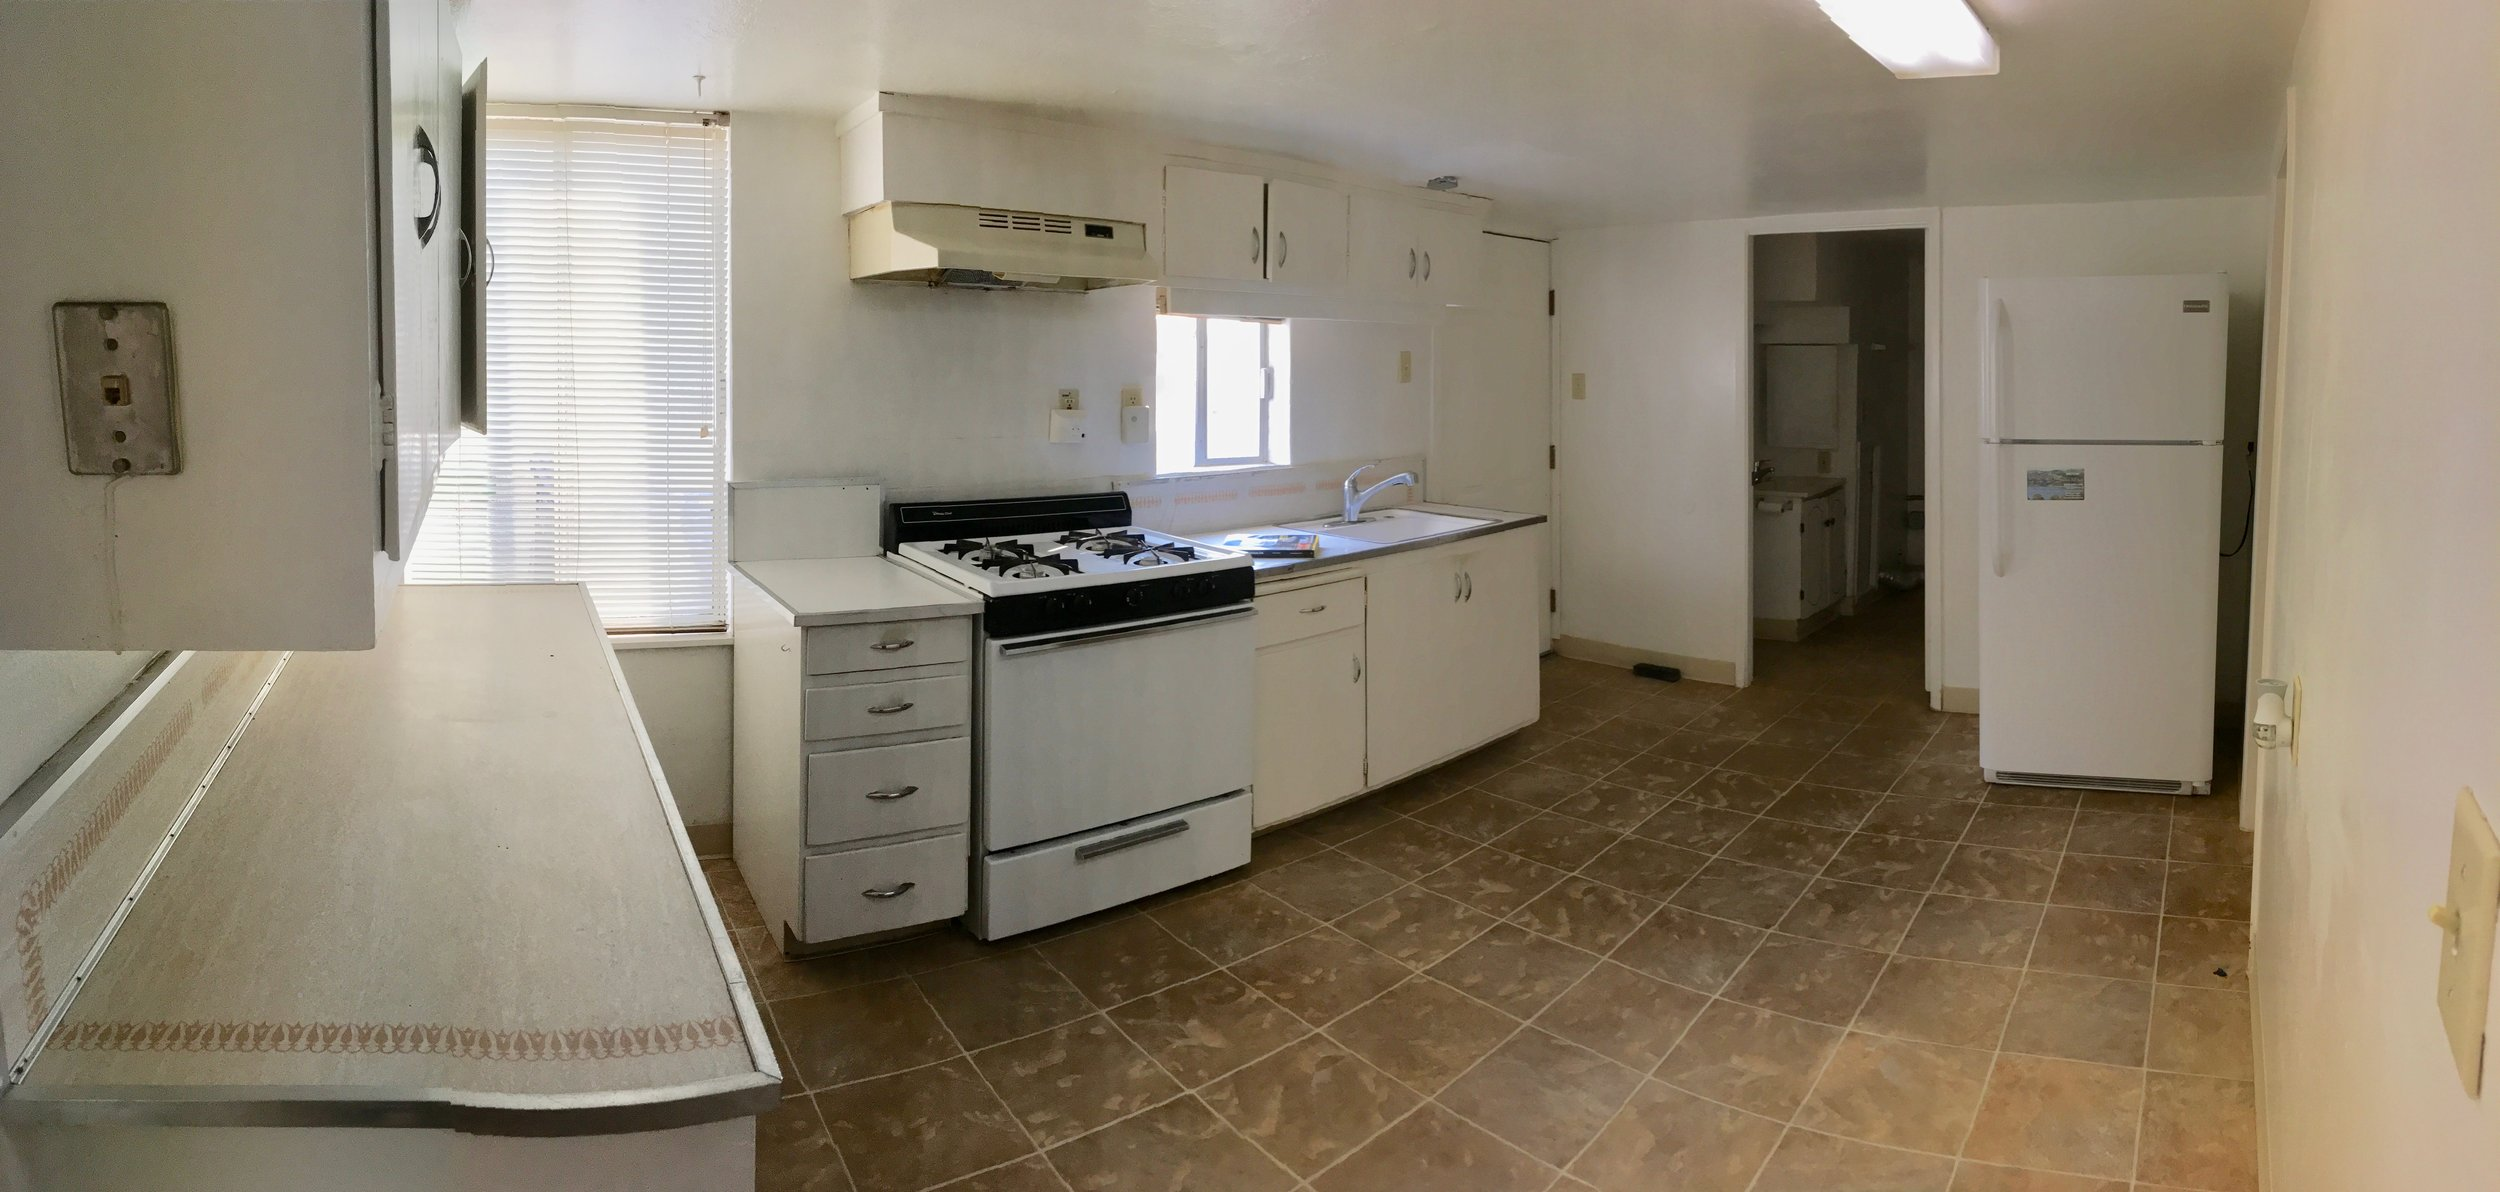 Kitchen in the rental unit